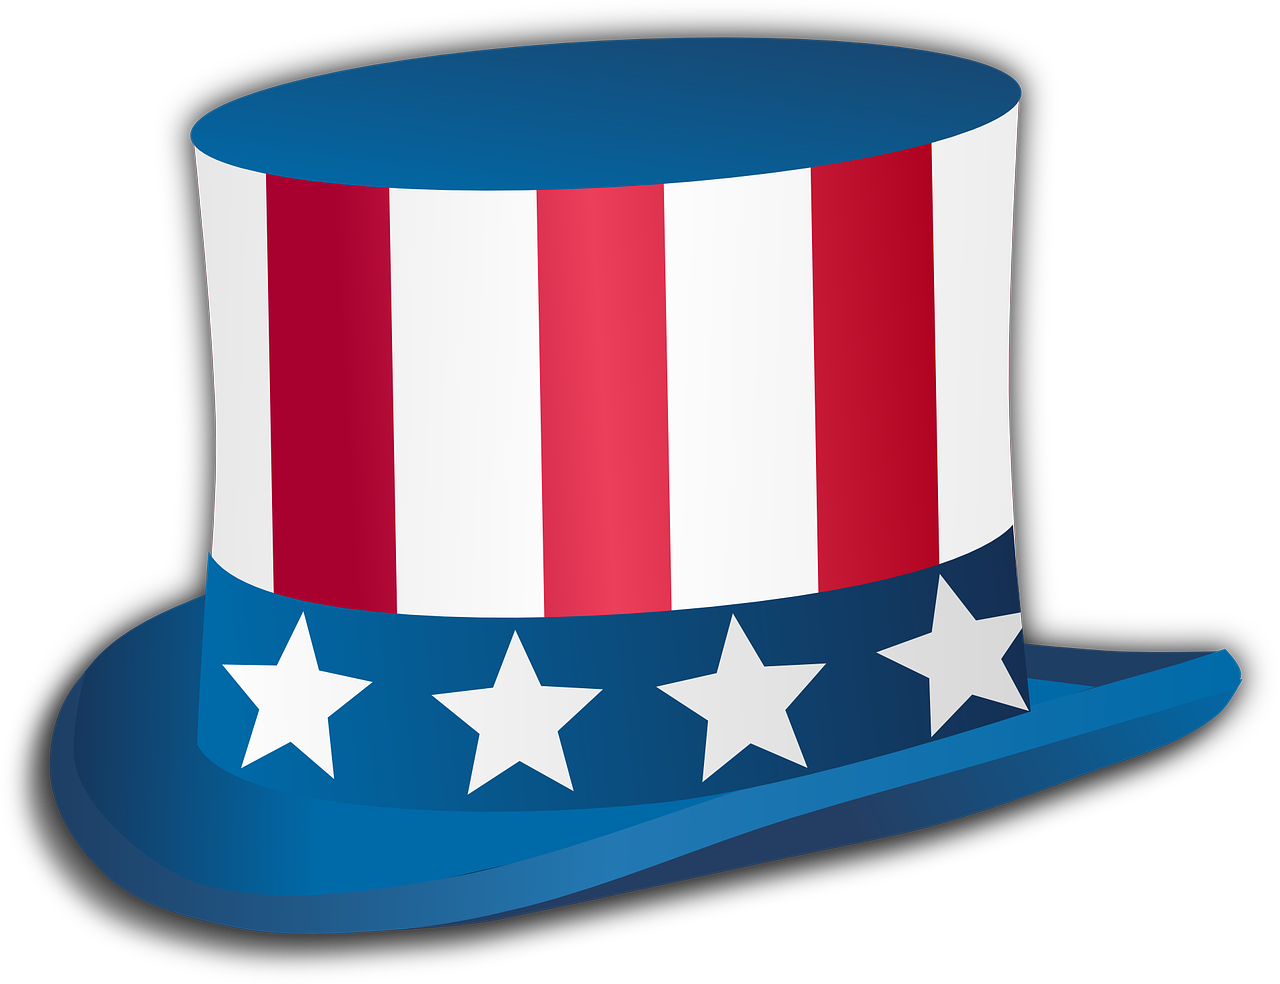 Political parties and symbols. Hat clipart revolutionary war